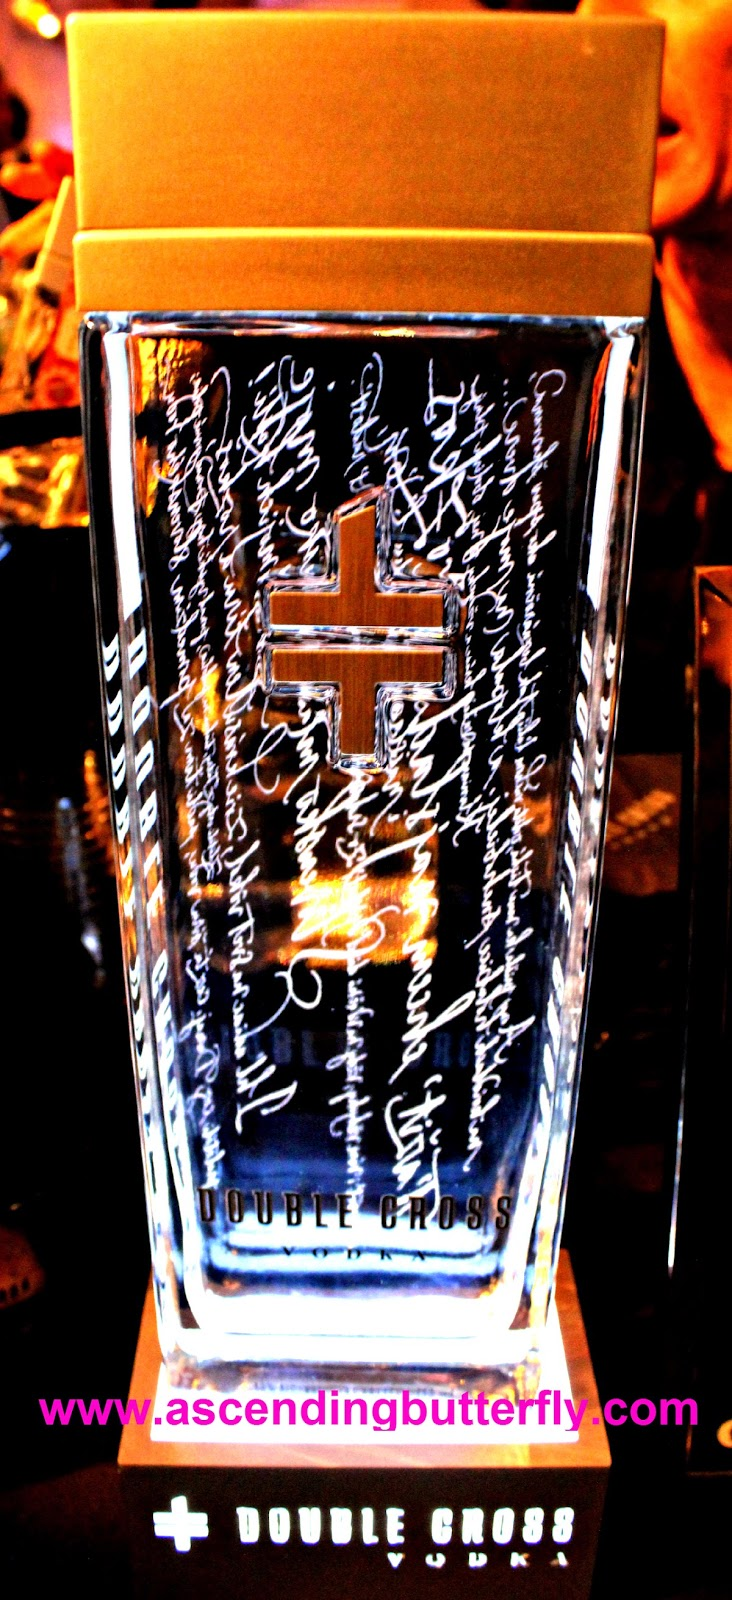 Double Cross Vodka at The Luxury Review in New York City 2014, spirits, Vodka